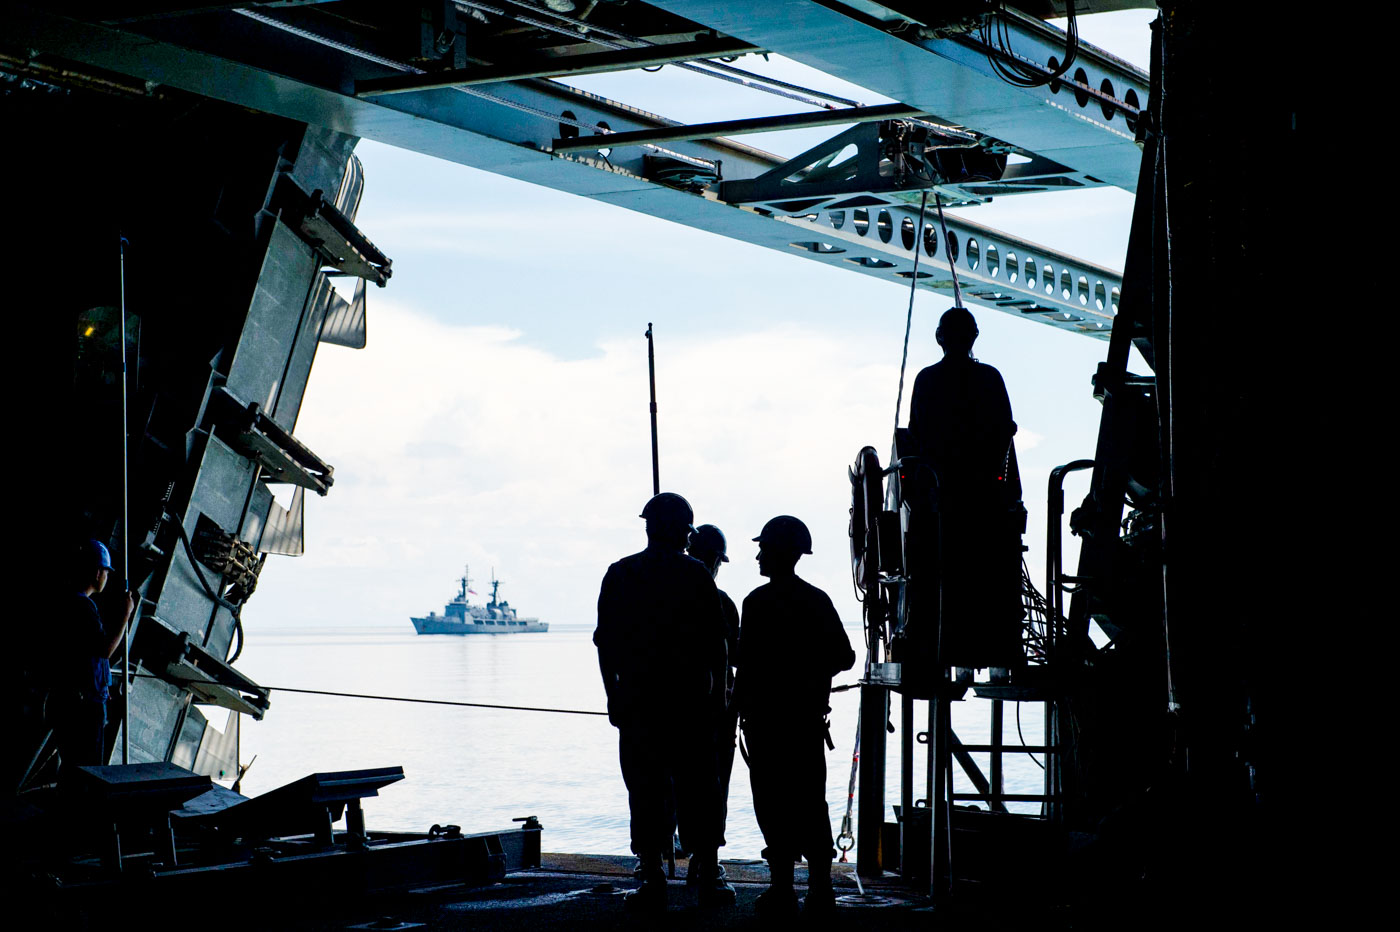 ON BOARD. Sailors operate a twin-boom extensible crane during boat operations aboard littoral combat ship USS Coronado (LCS 4). US Navy photo by Mass Communication Specialist 3rd Class Deven Leigh Ellis